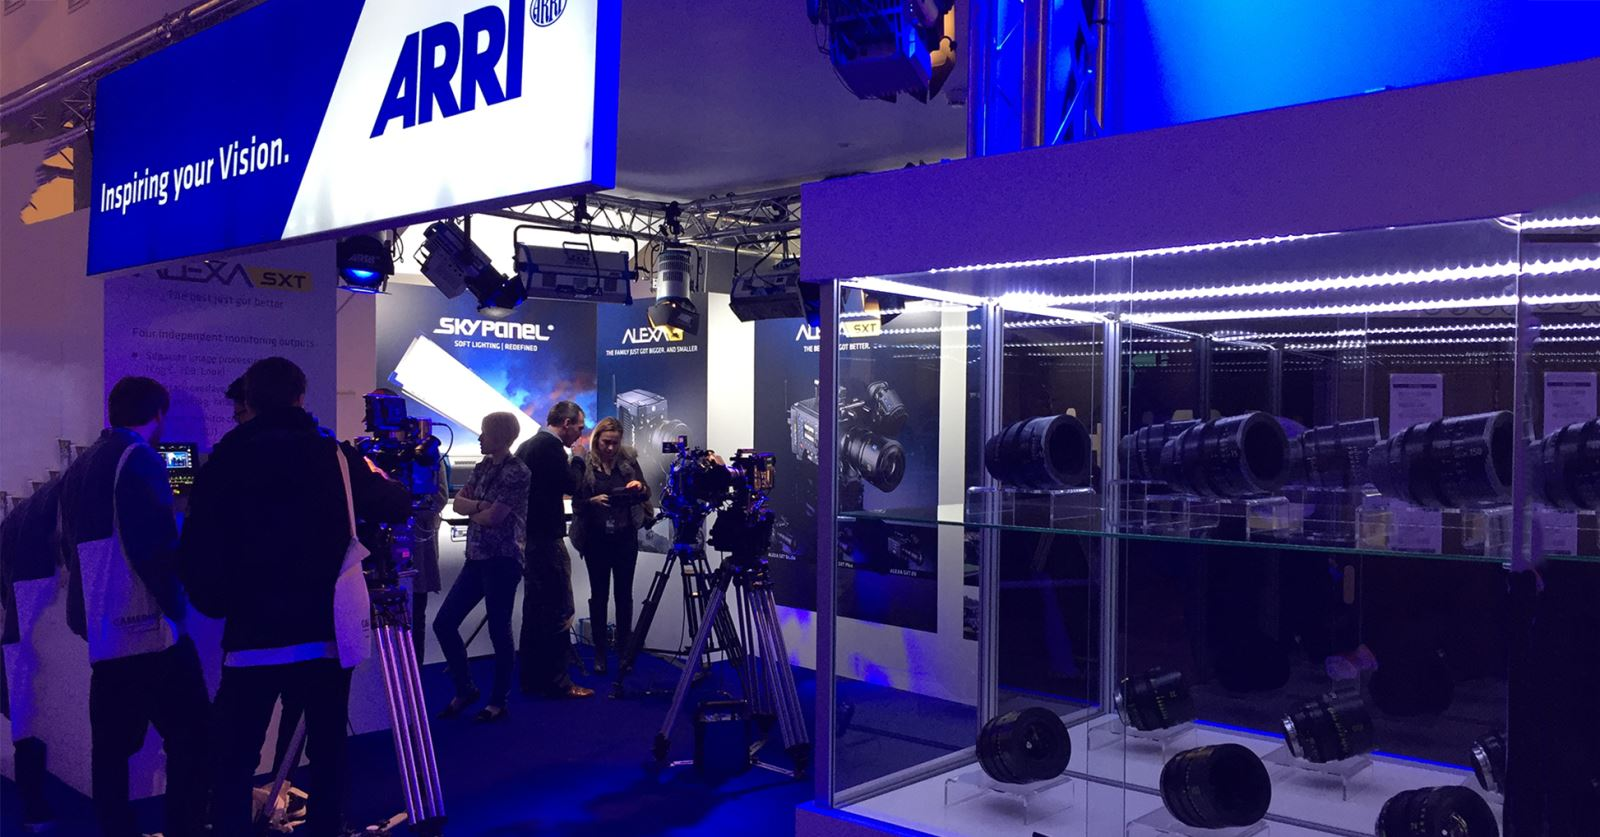 GTC sponsors ARRI's stand at the Camerimage exhibition in Bydgoszcz, Poland